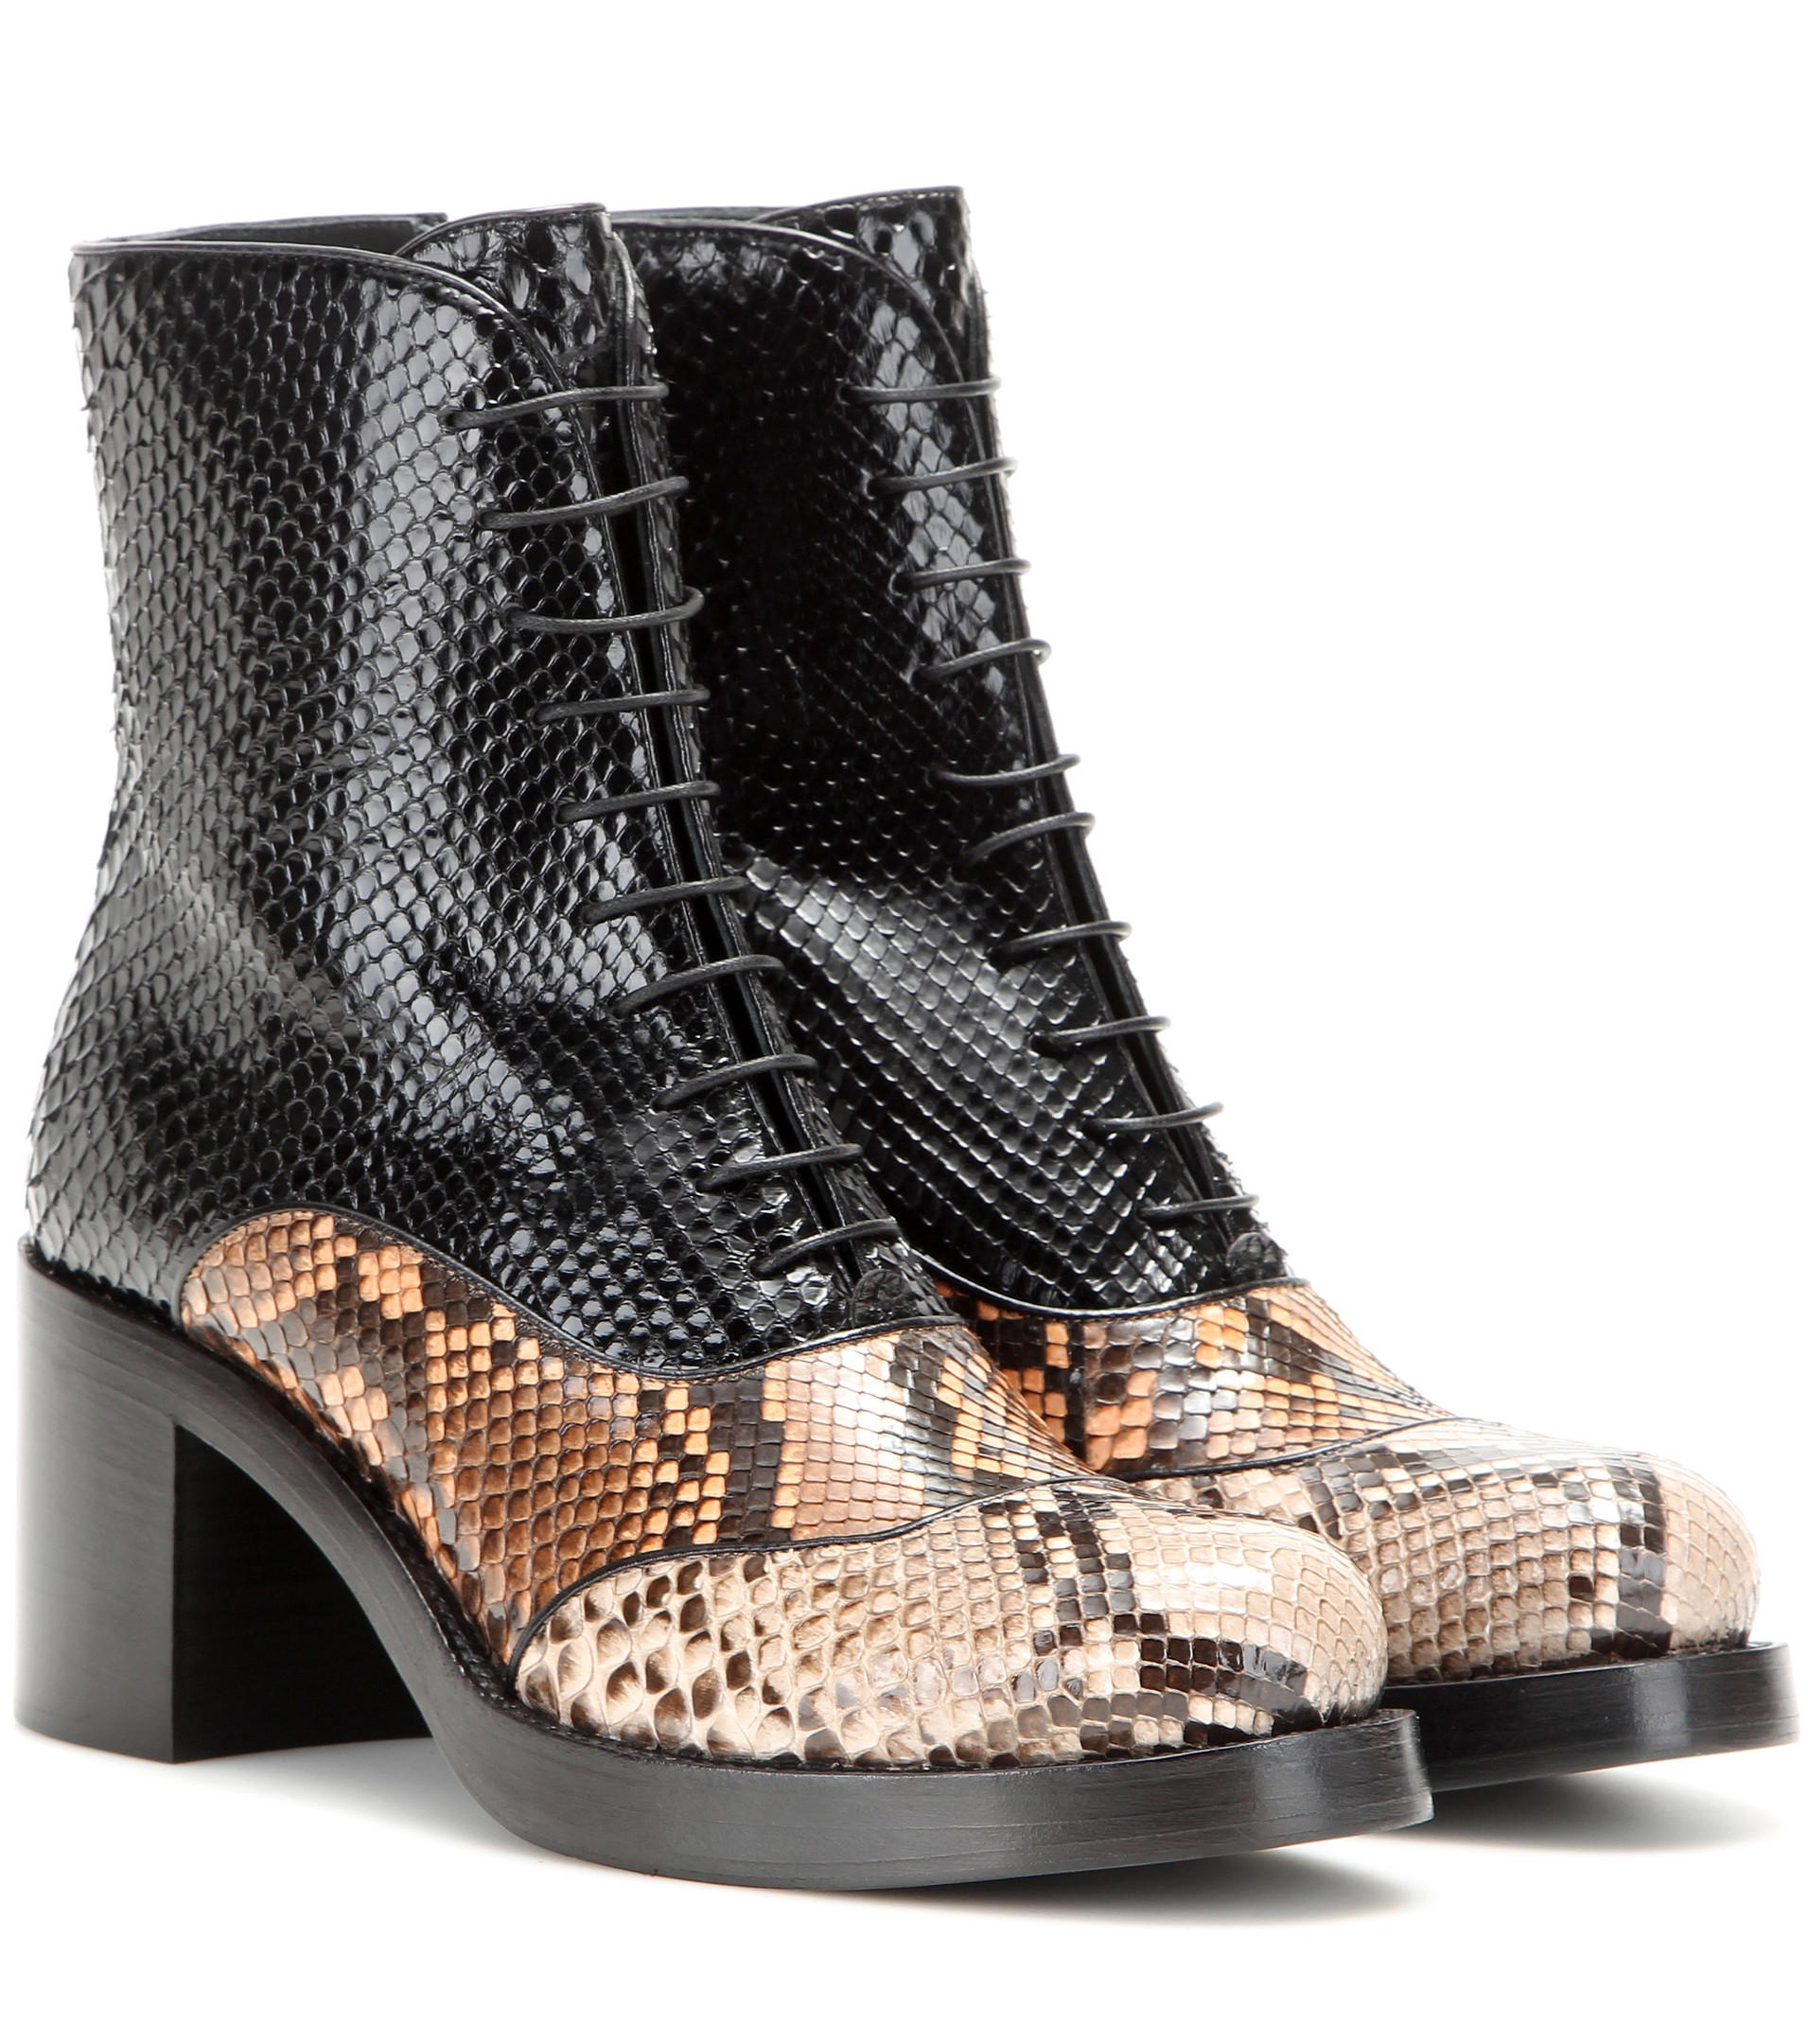 Miu Miu Leather Snakeskin Ankle Boots in Black